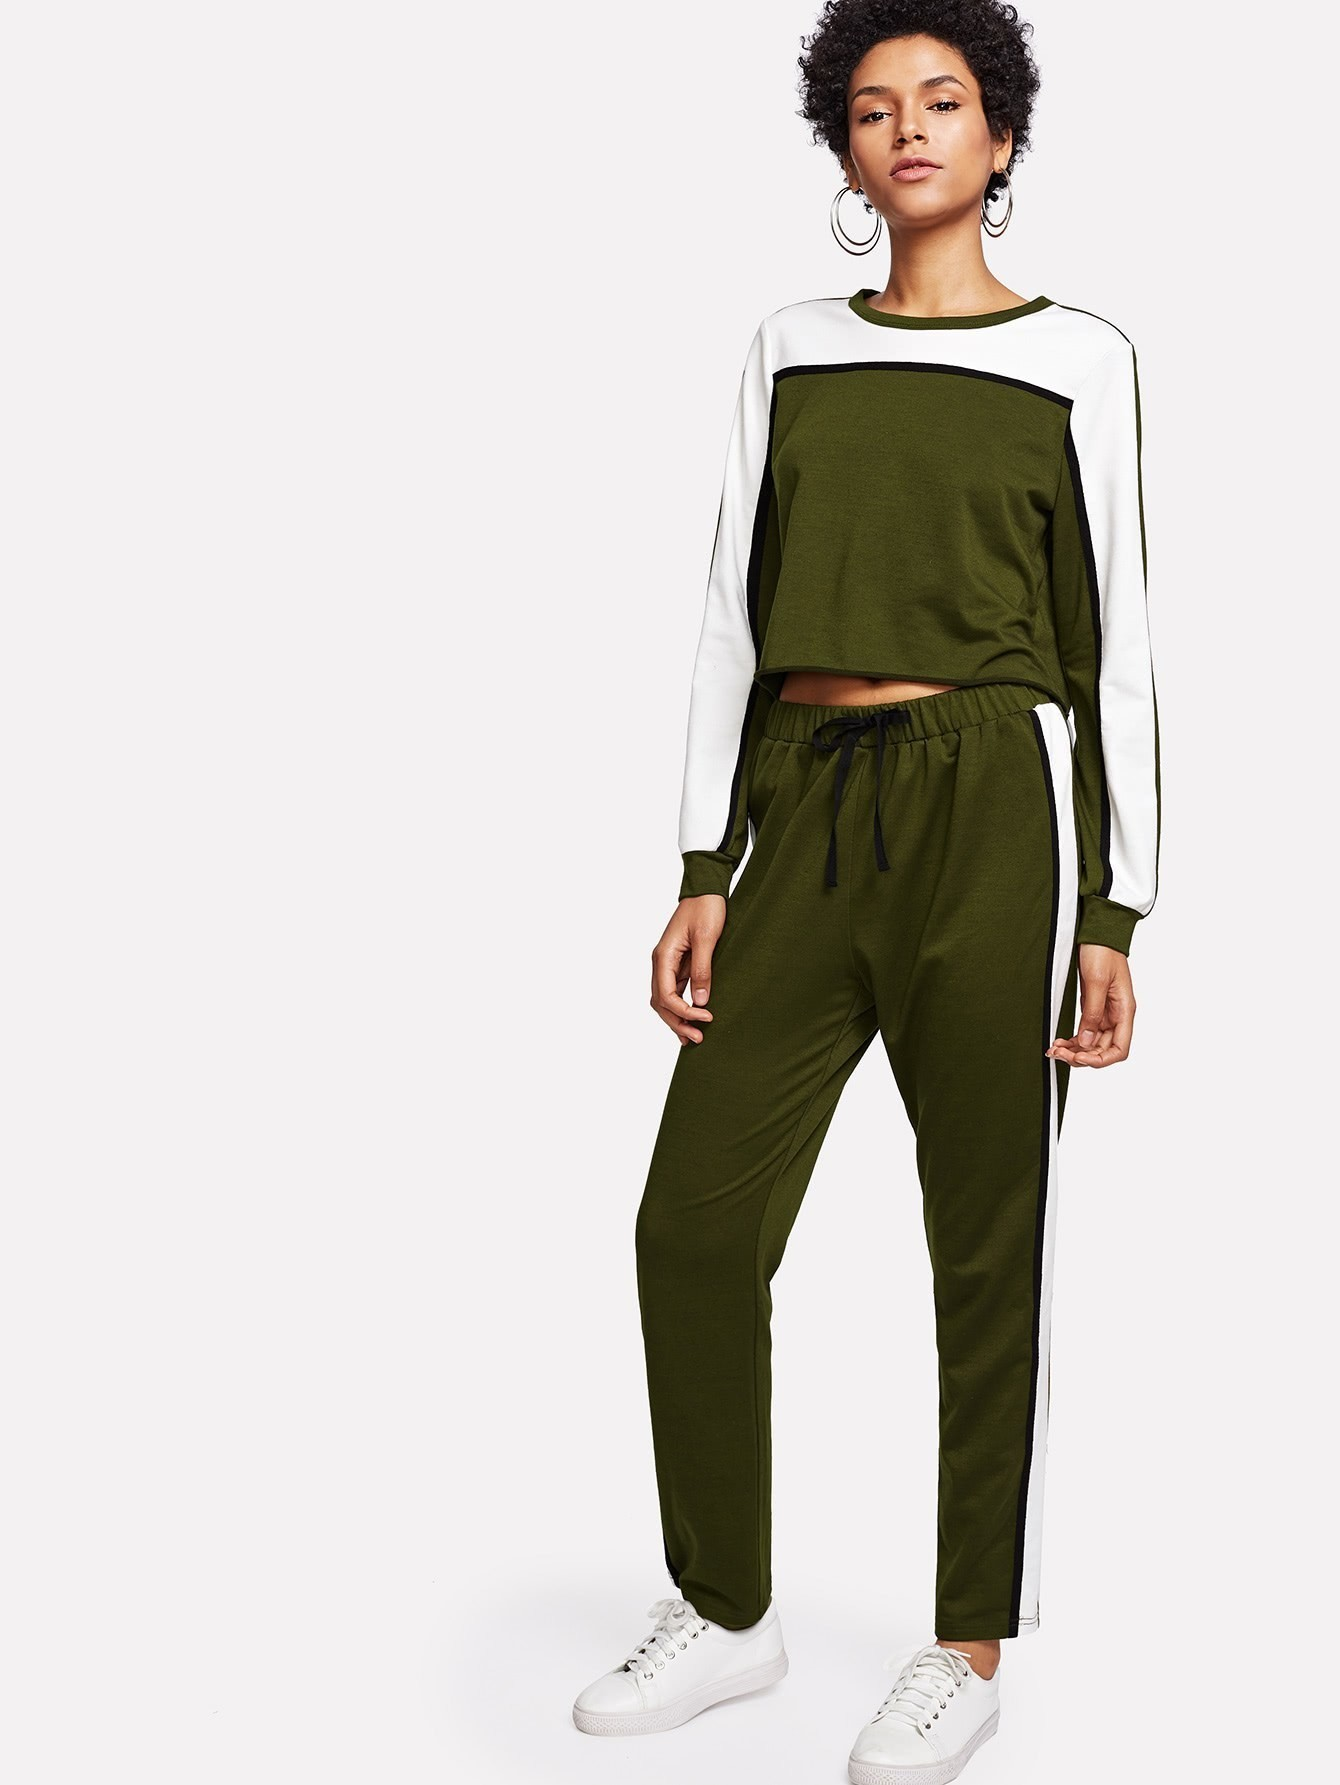 Two Tone Crop Pullover & Sweatpants Set two tone drop shoulder sweatshirt